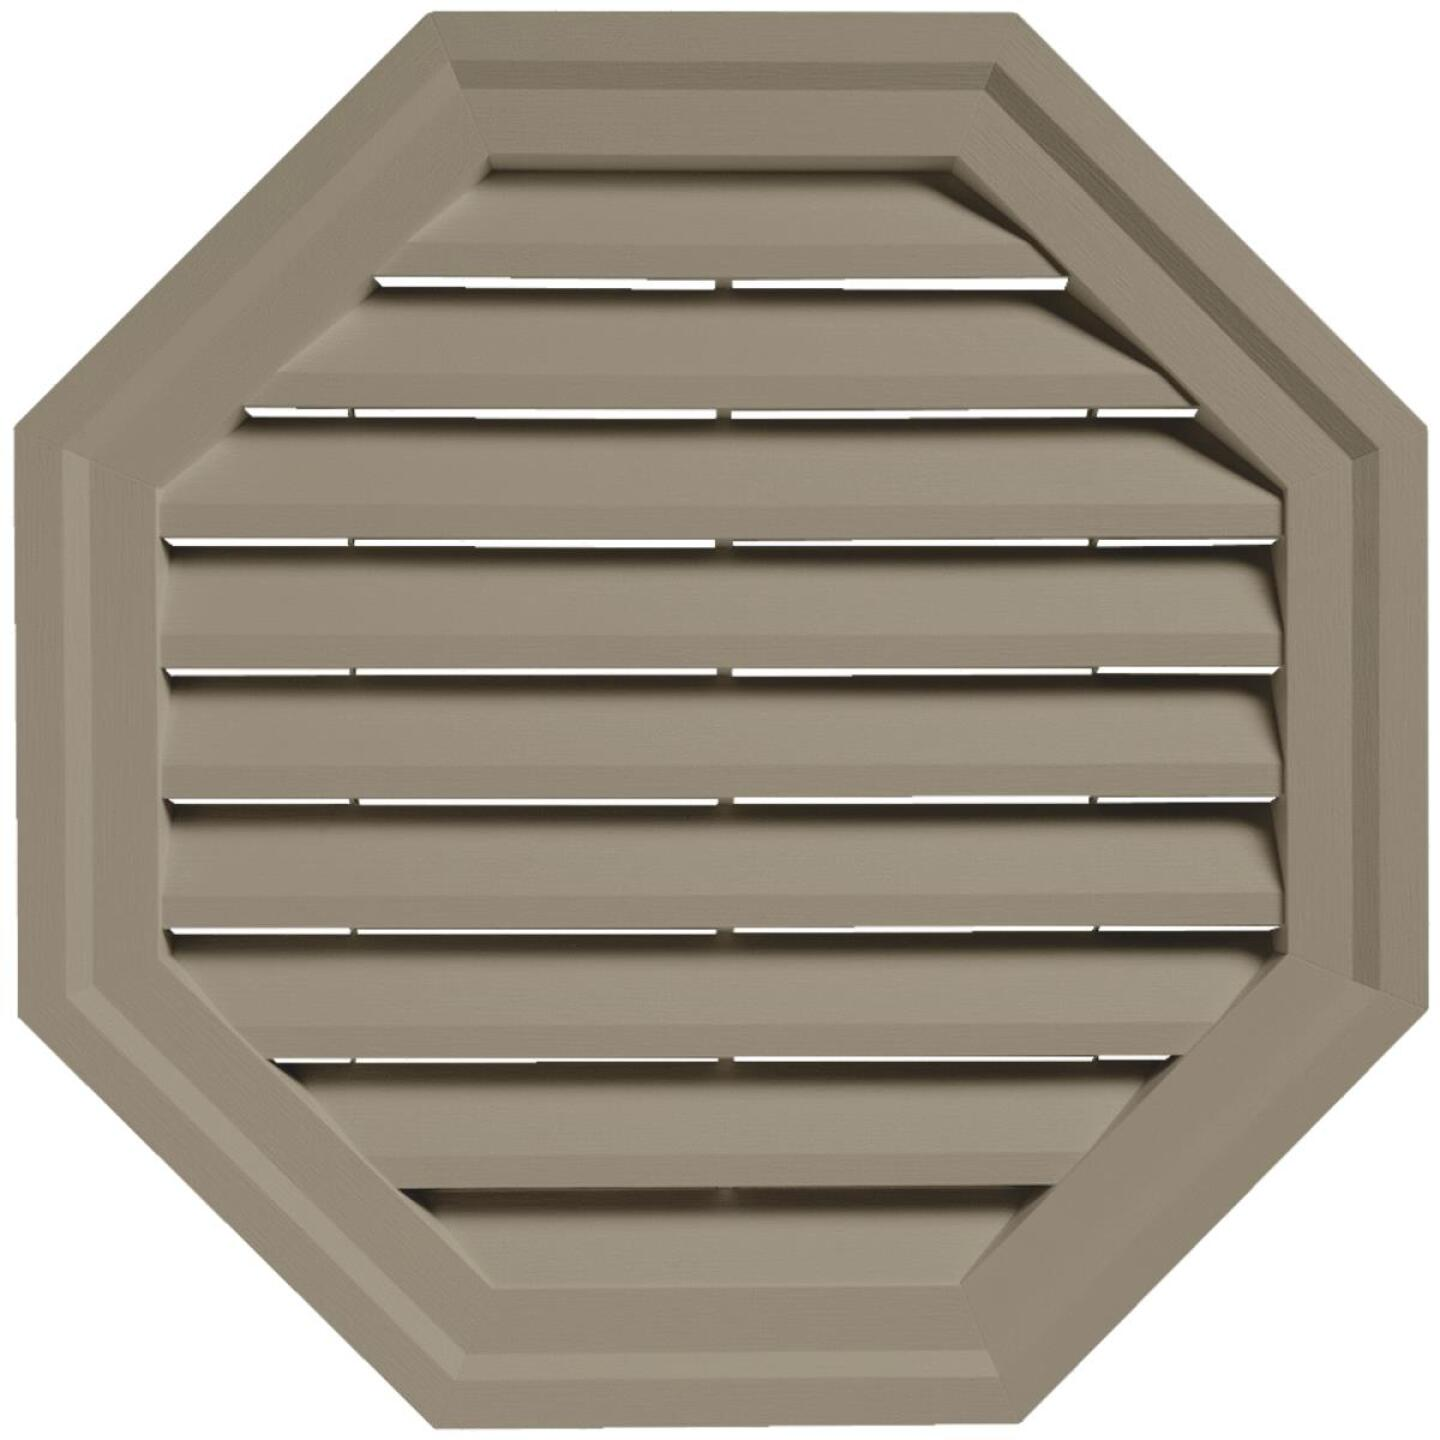 "Ply Gem 18"" Octagon Clay Gable Attic Vent Image 1"